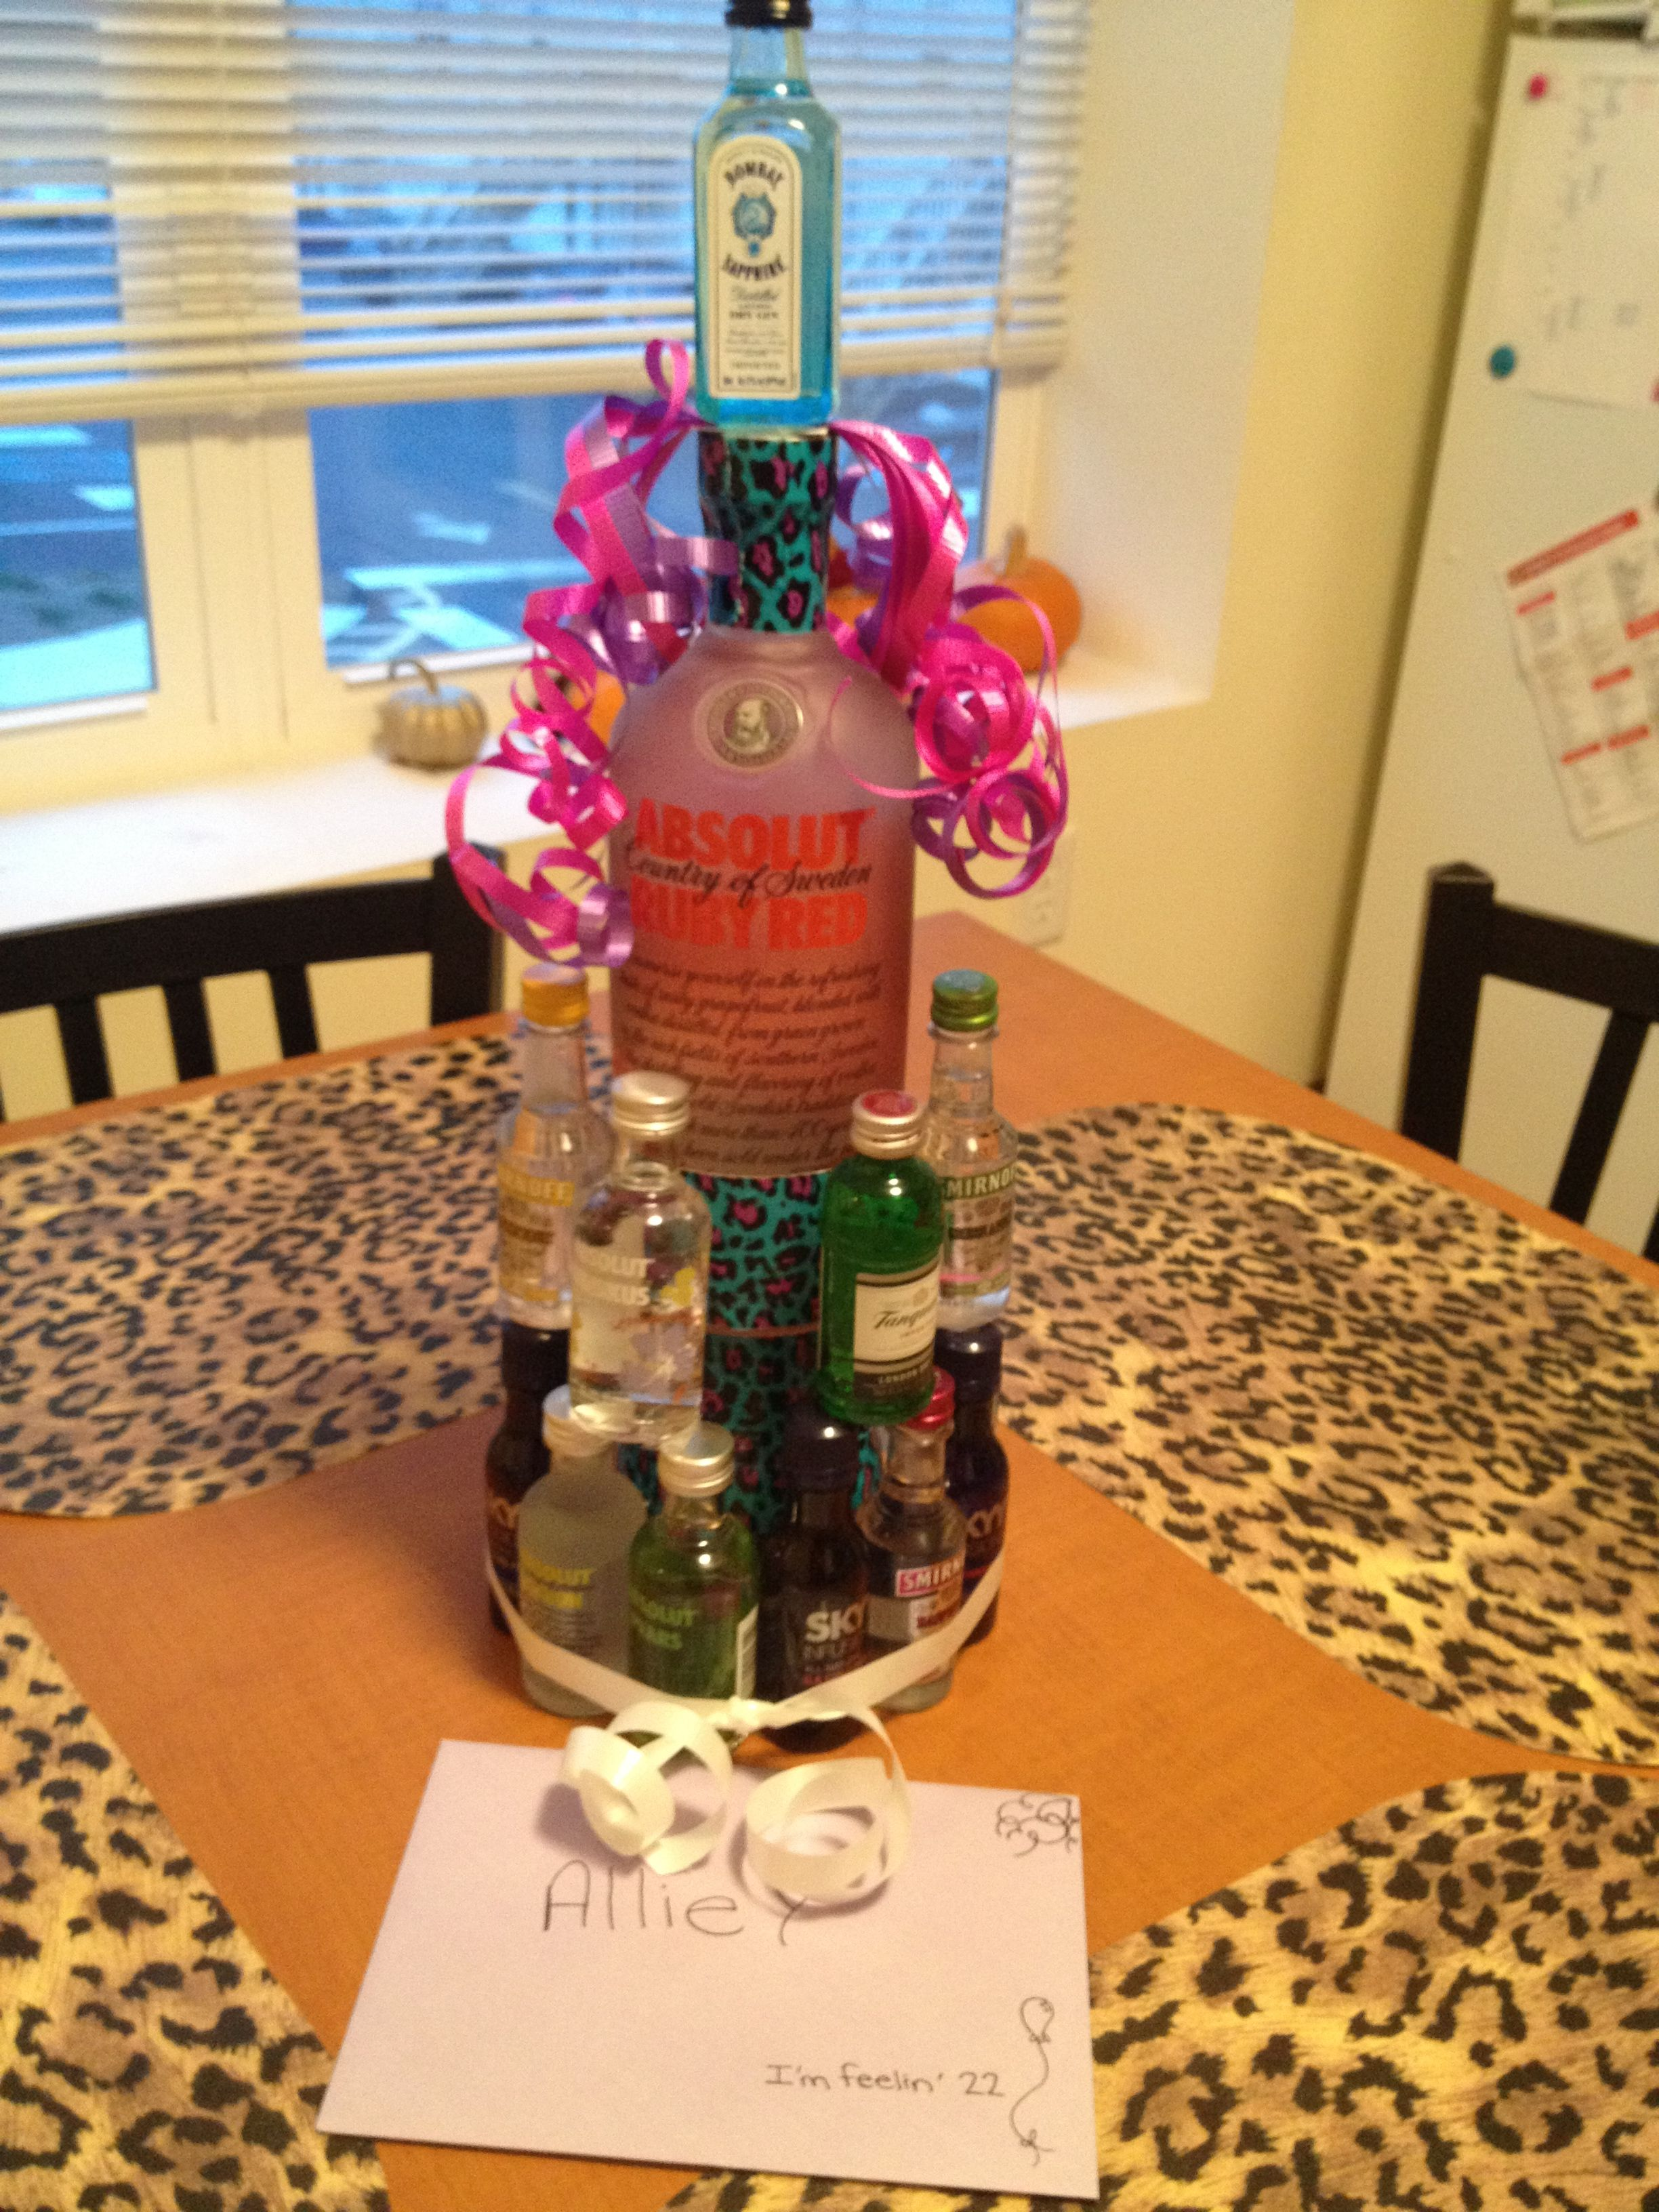 Alcohol Nipper Cake For A Friends Birthday We Did This Her 22nd But It Would Definitely Be Great 21st Gift